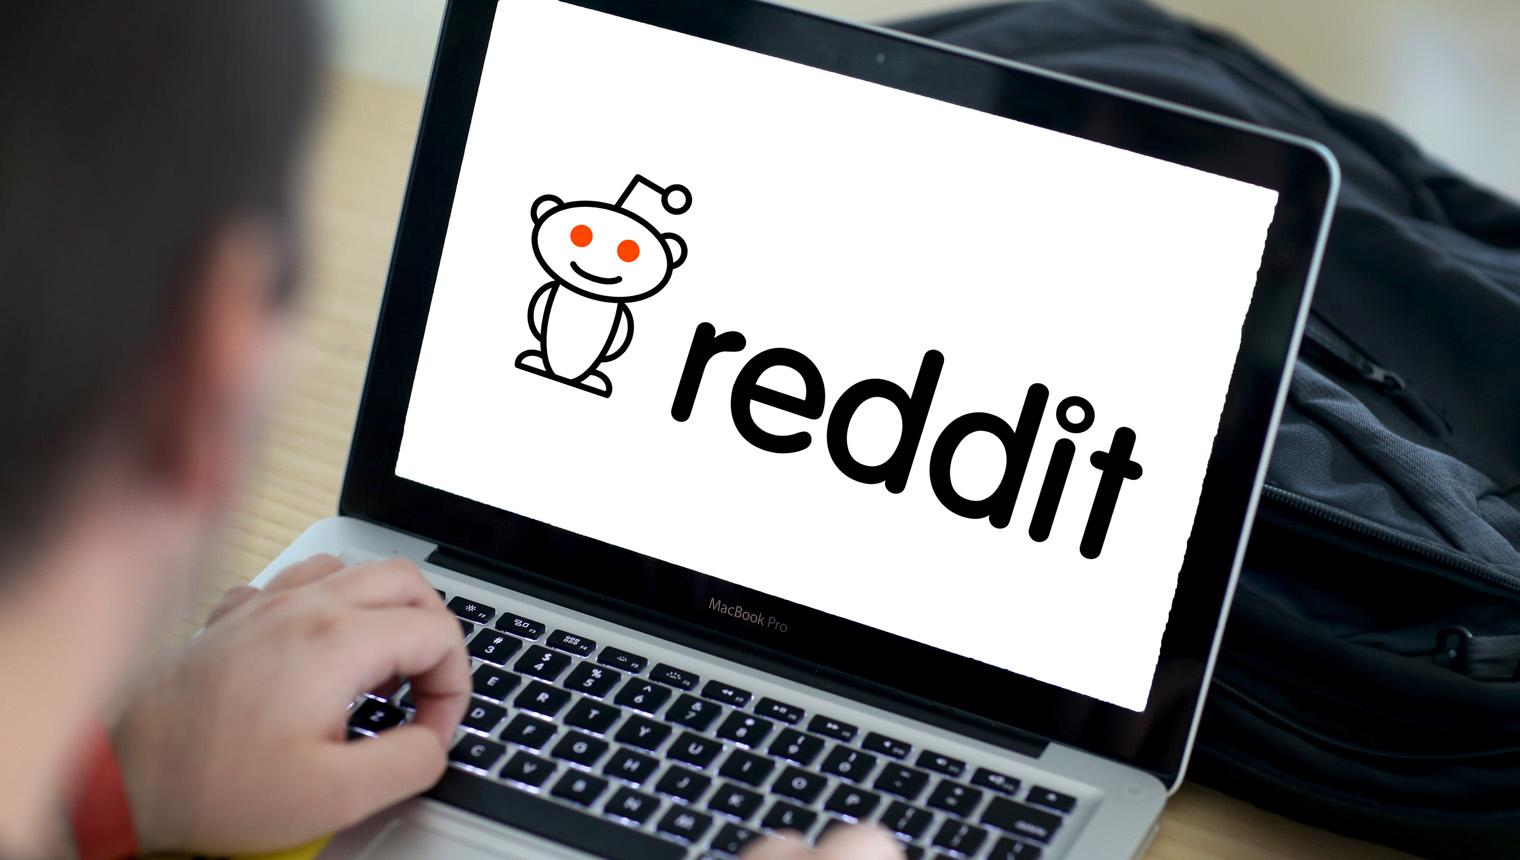 The 10 best websites you've probably never heard of, according to redditors